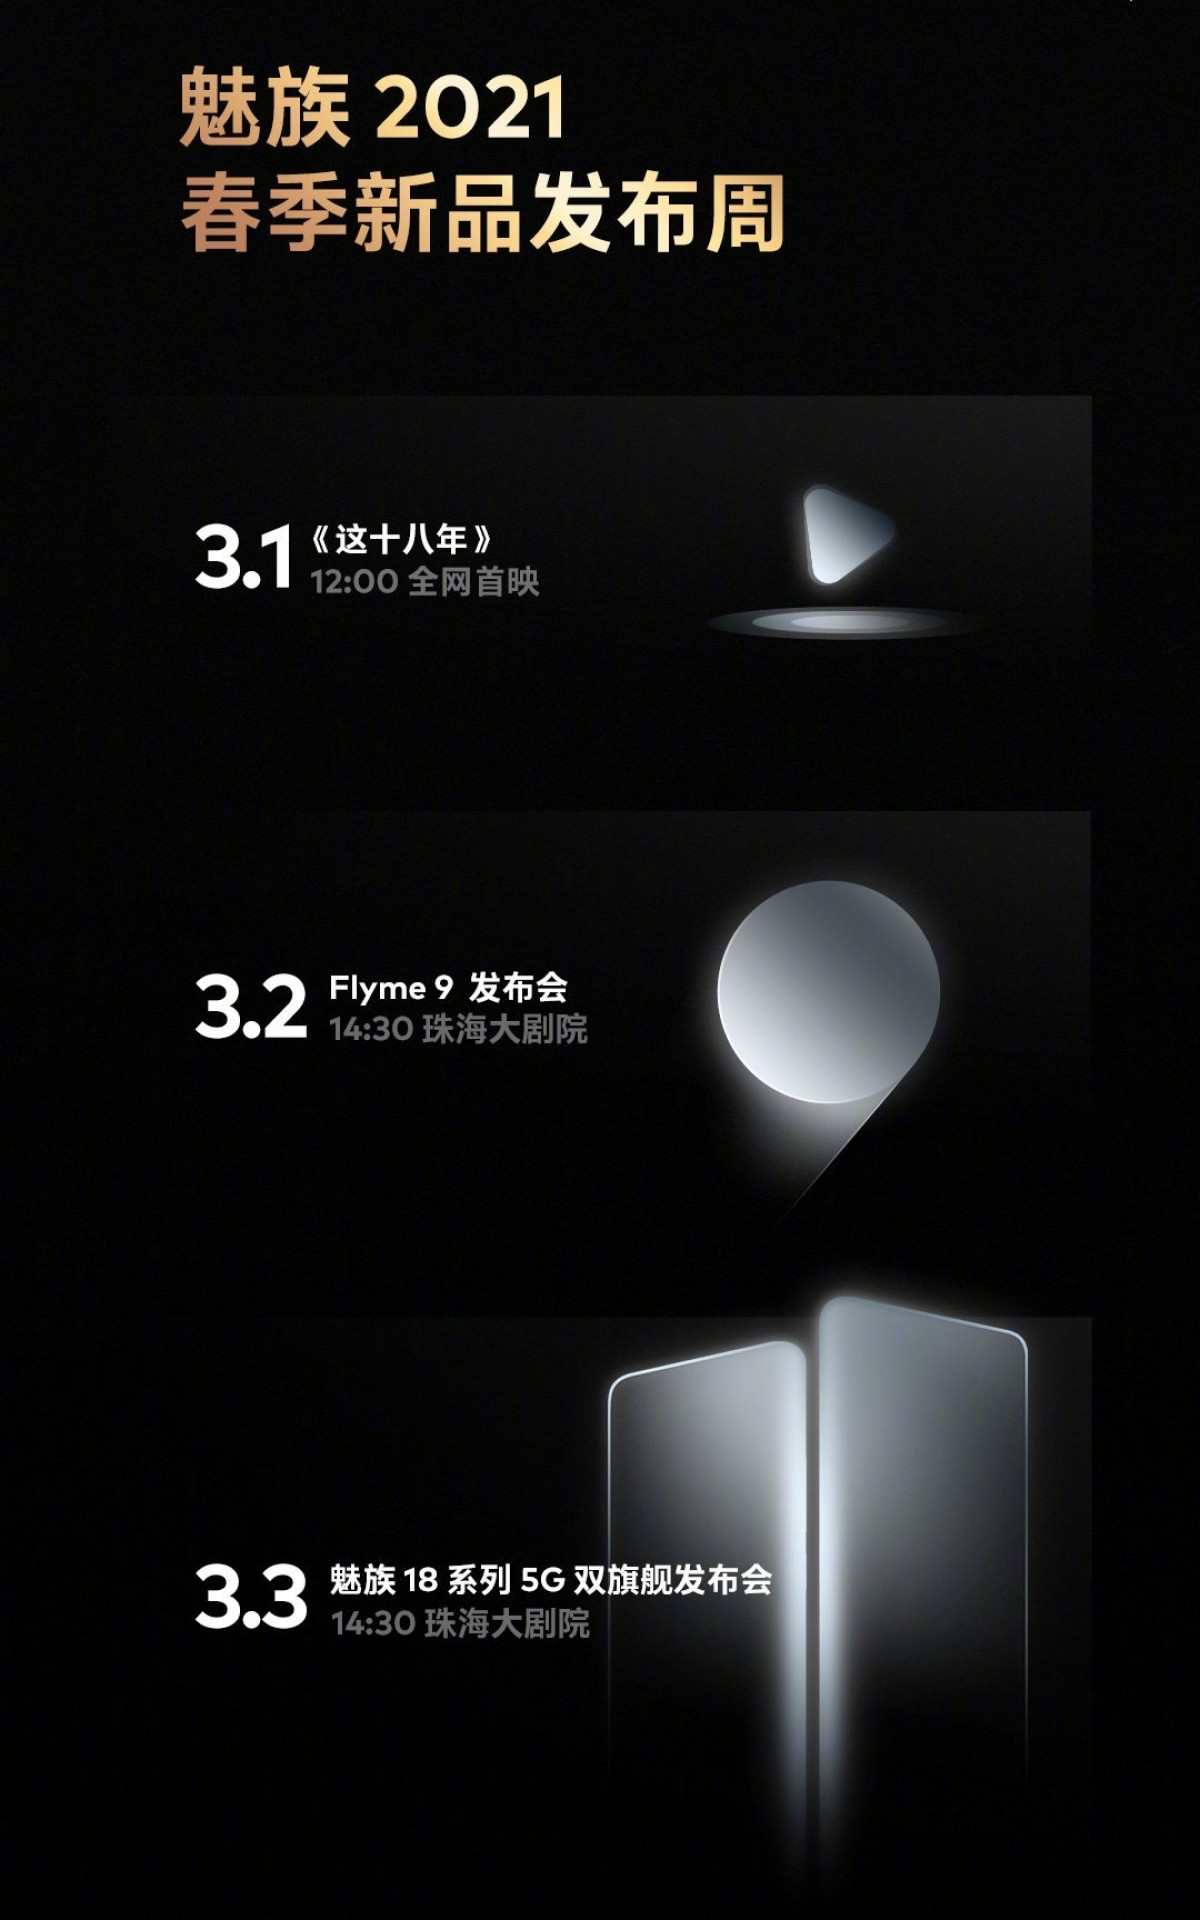 Meizu 18 series officially arriving on March 3